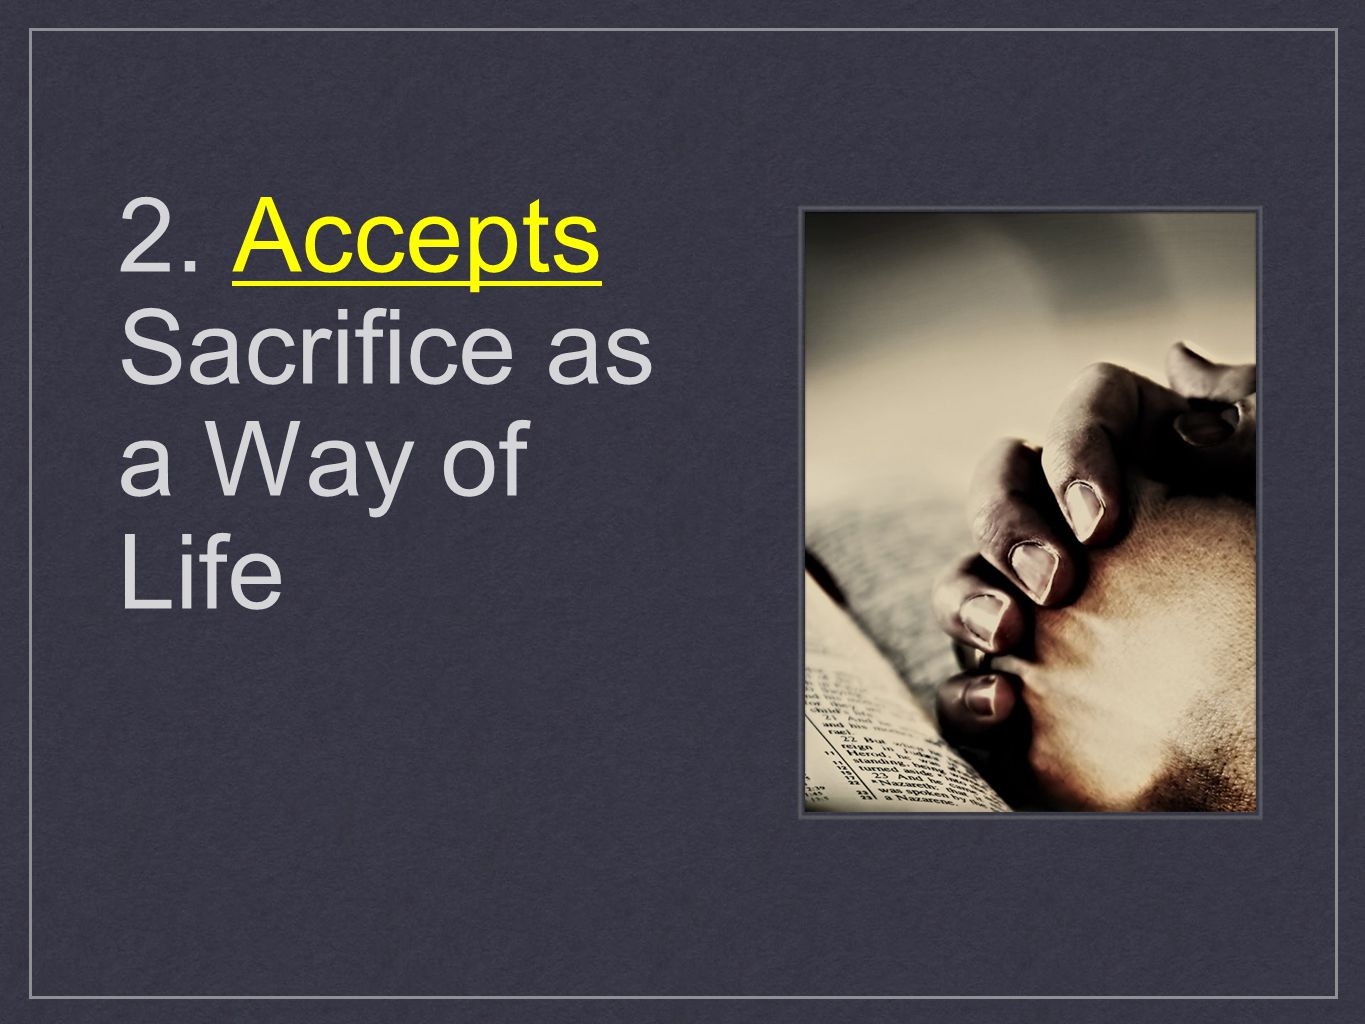 2. Accepts Sacrifice as a Way of Life